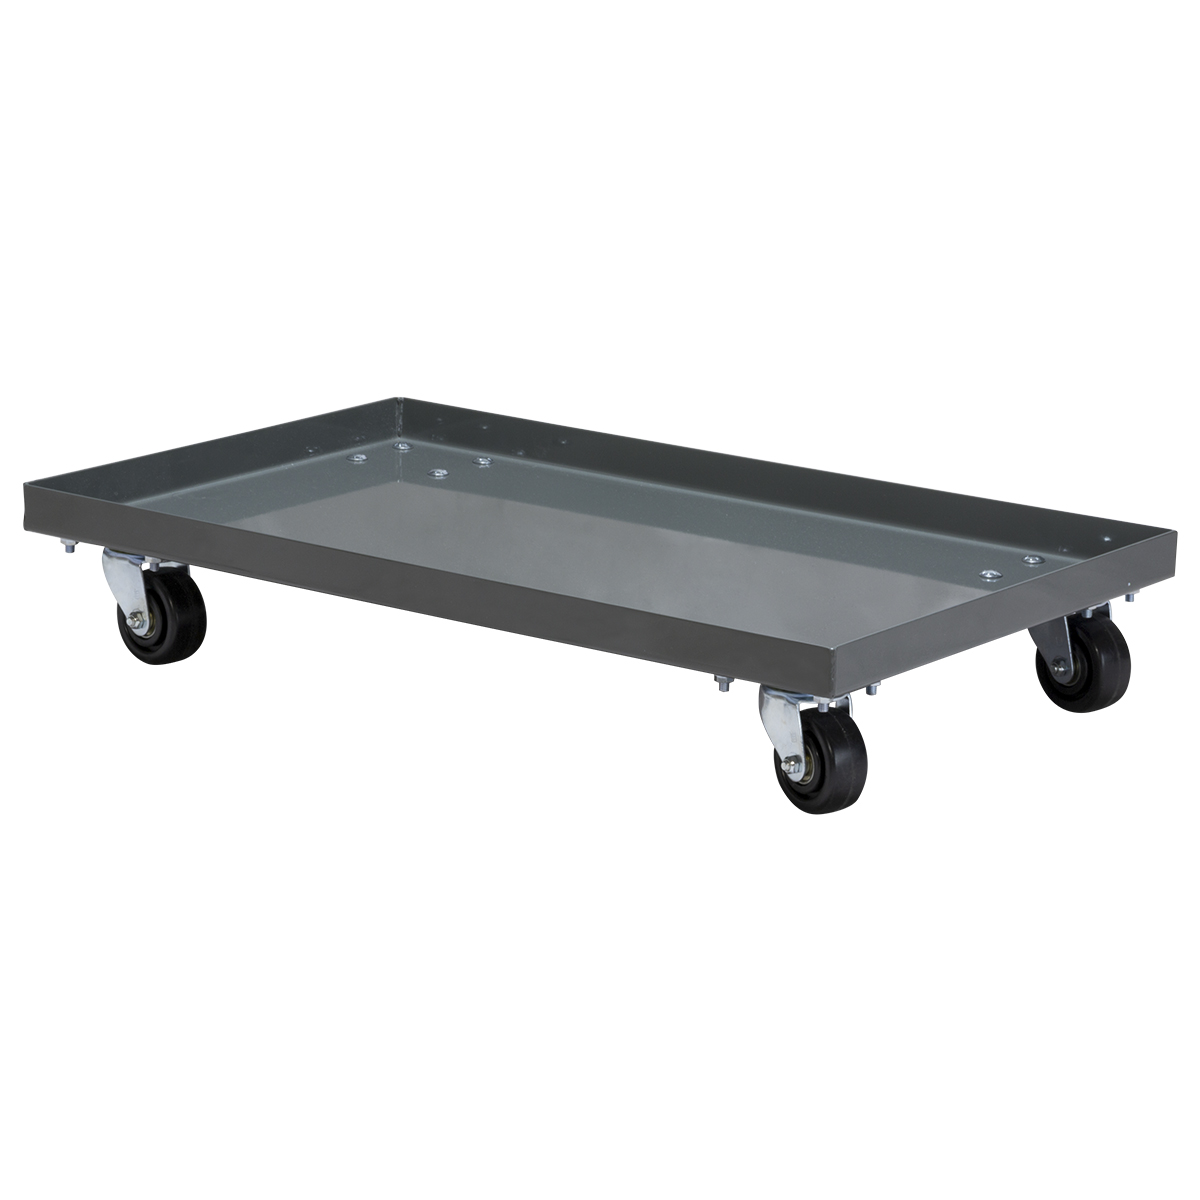 Item DISCONTINUED by Manufacturer.  Steel Dolly, 20x18, N/A3